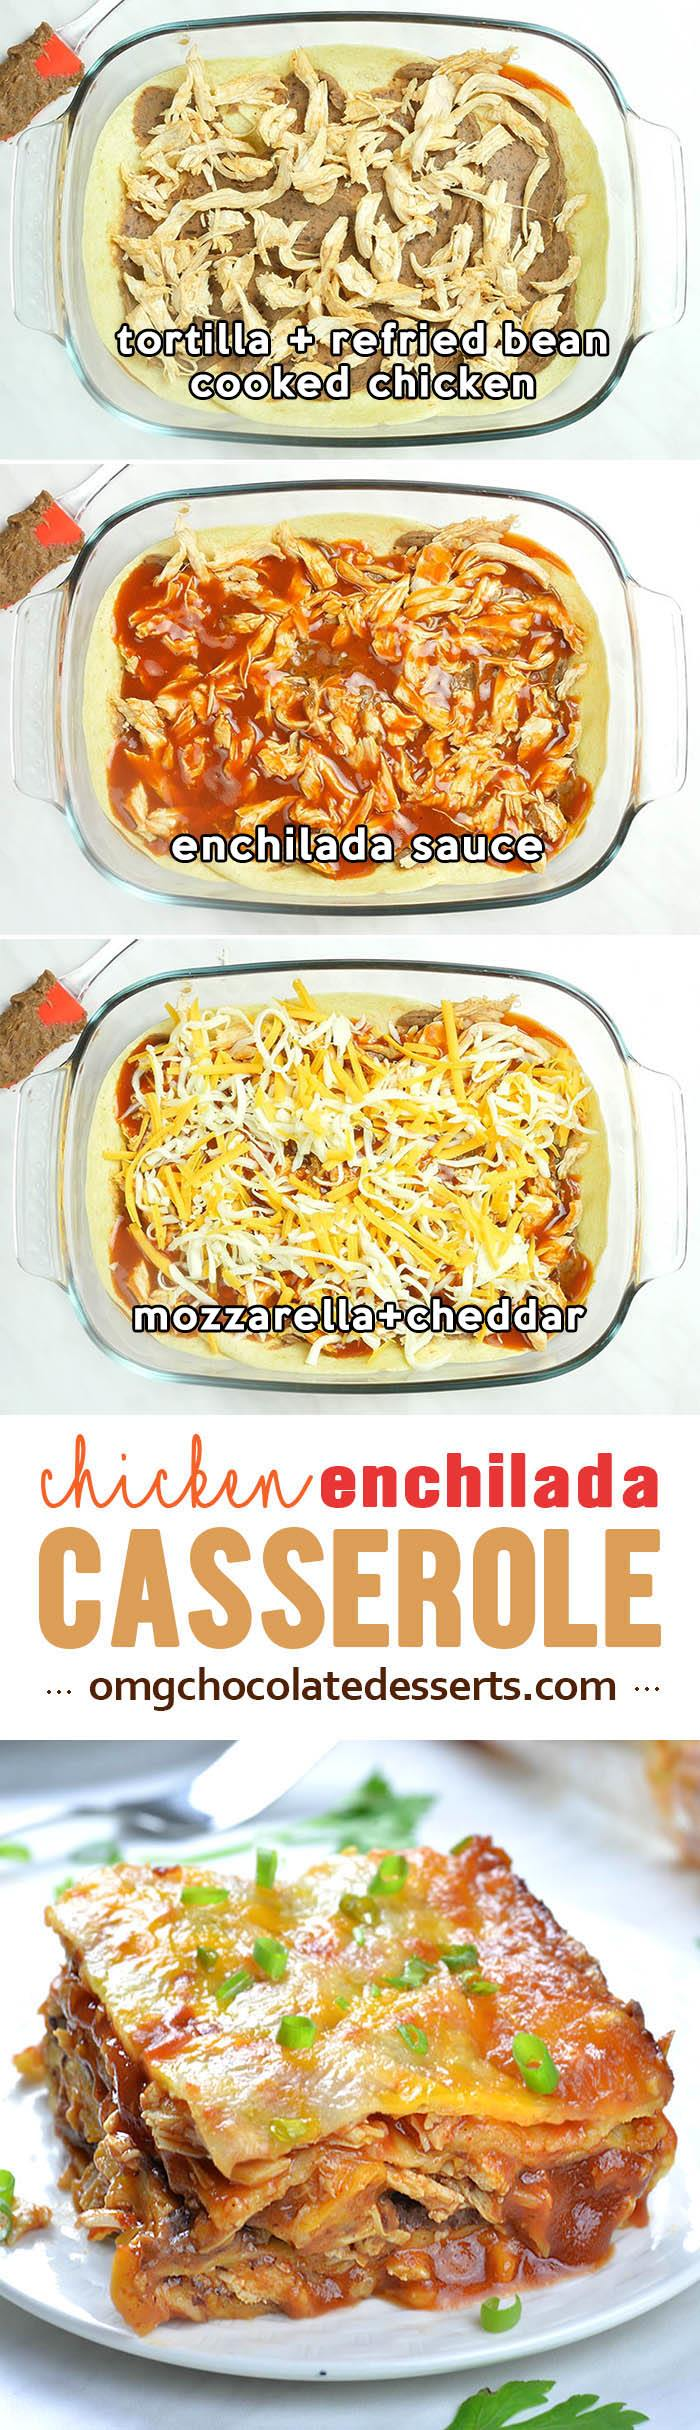 Cheesy Chicken Enchilada Casserole is quick and EASY WEEKNIGHT DINNER for whole family. It's simple, comfort food recipe with only 5 ingredients.